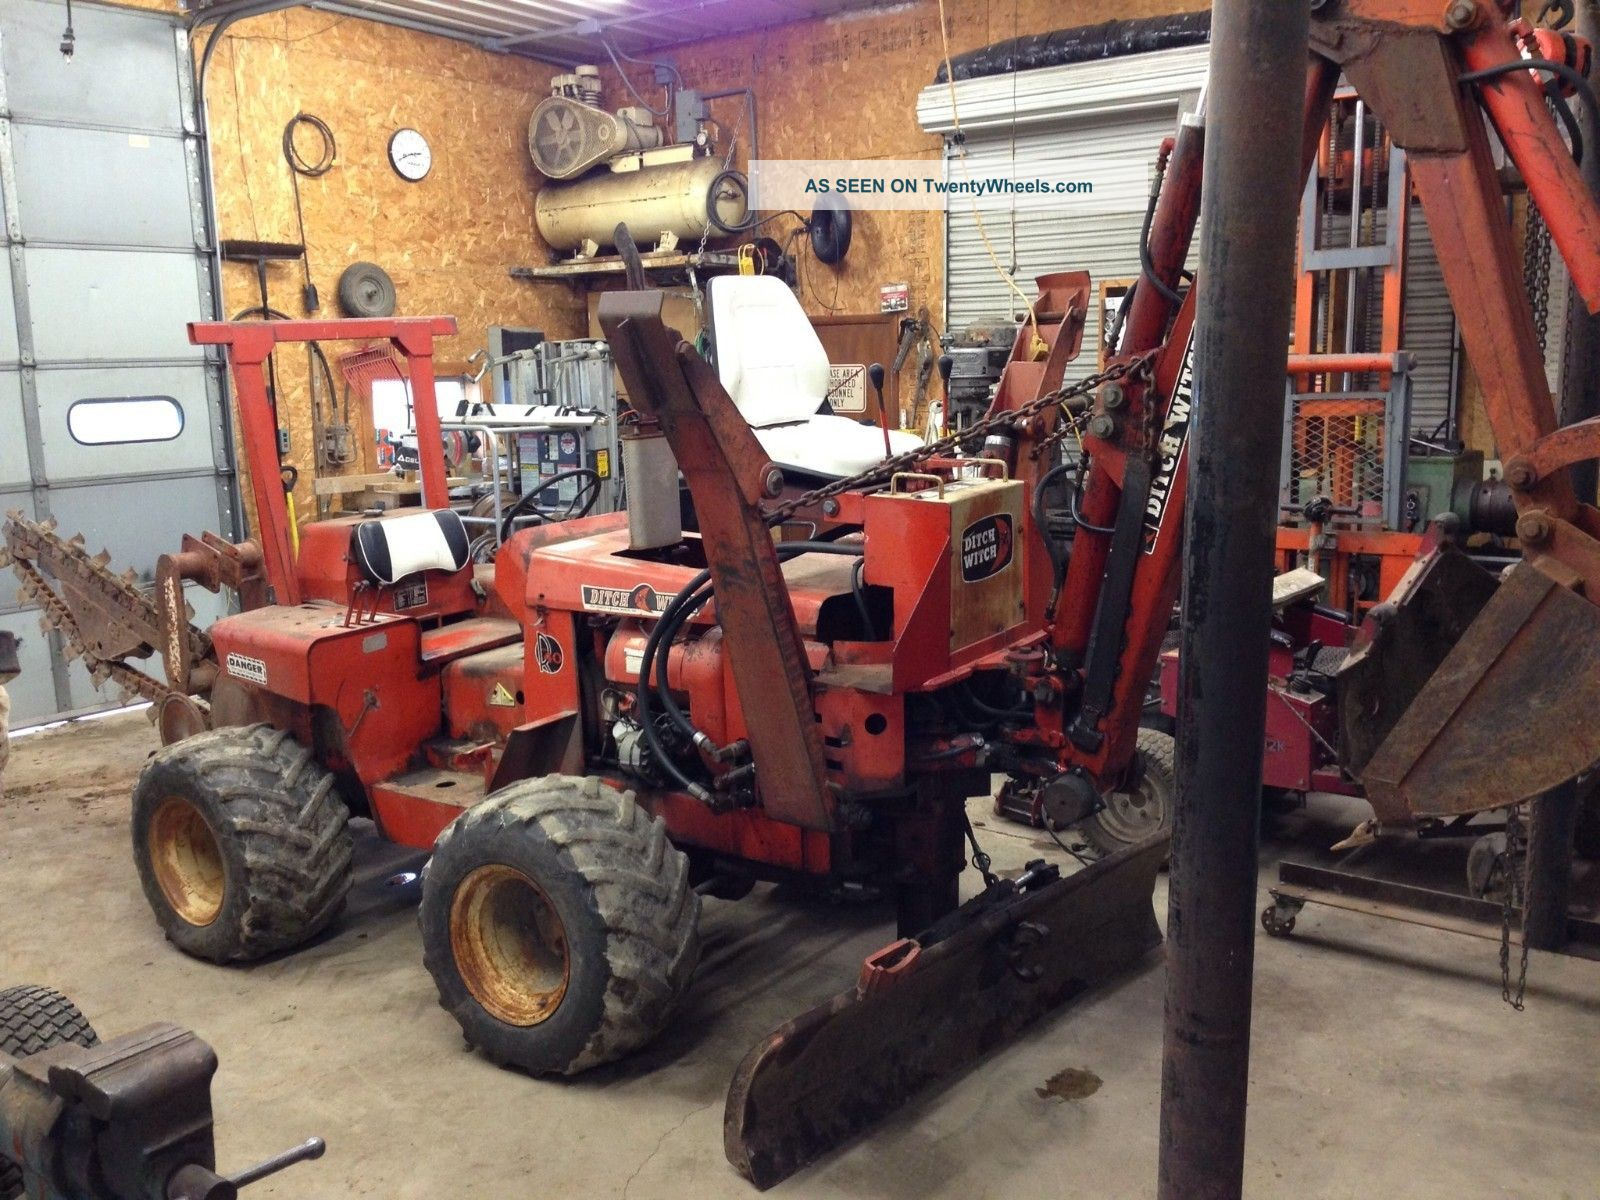 Ditch Witch Trencher R40 With Backhoe Trenchers - Riding photo